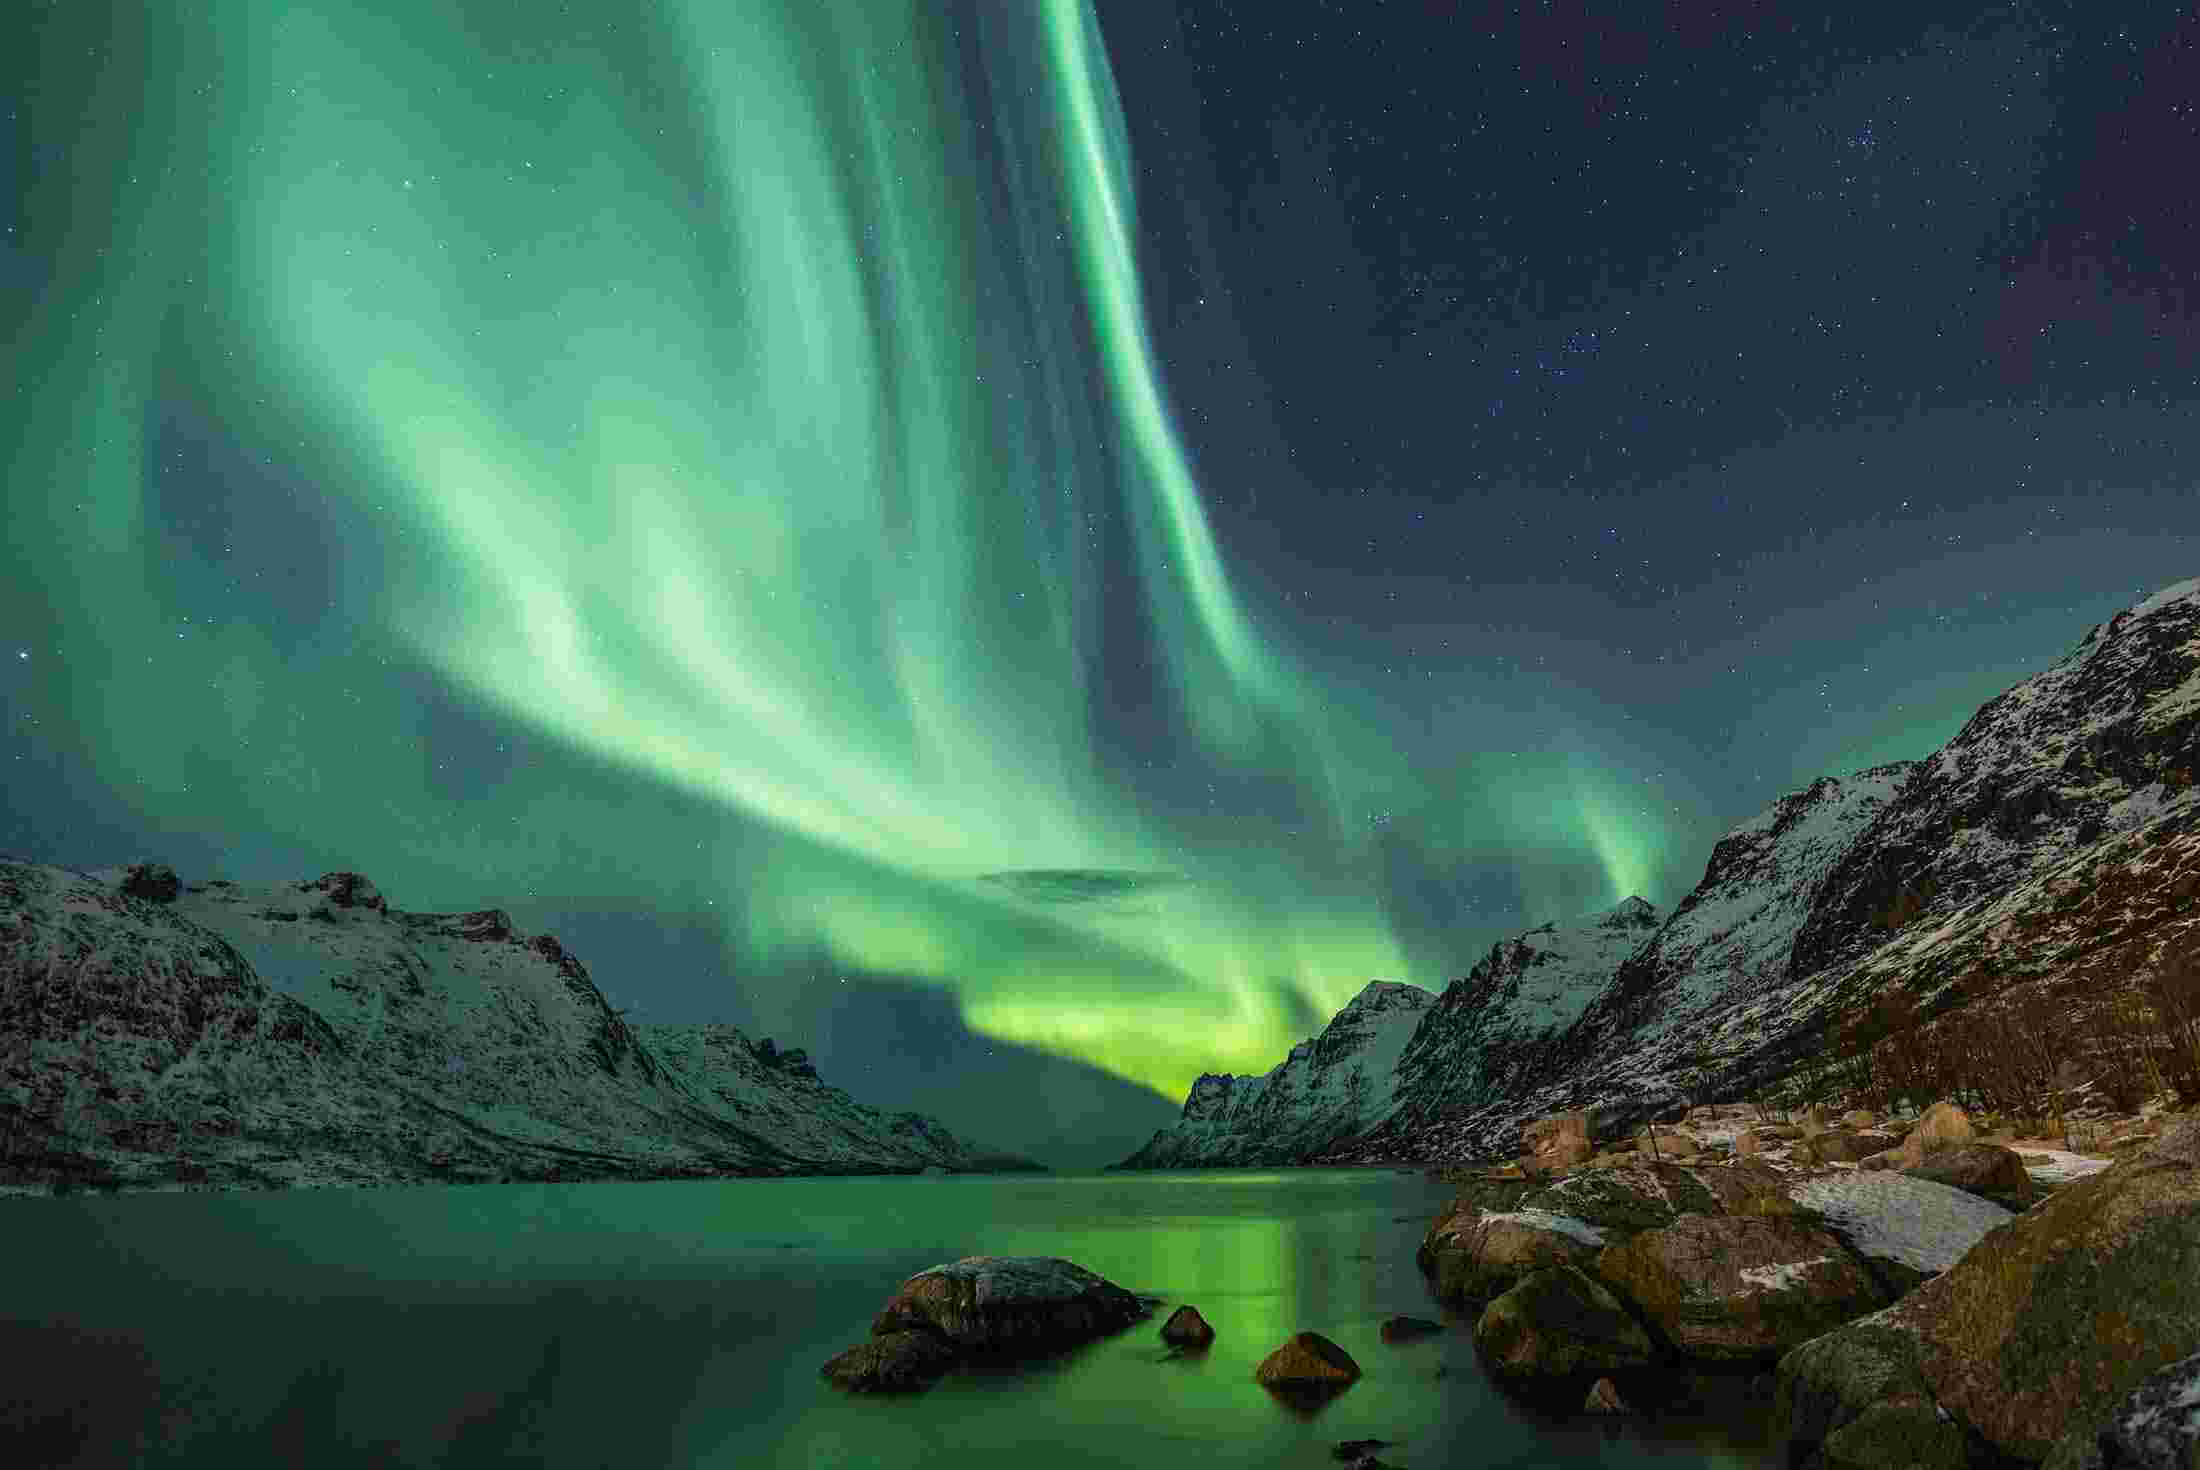 iceland_northern_lights_waters_edge_mountains.jpg